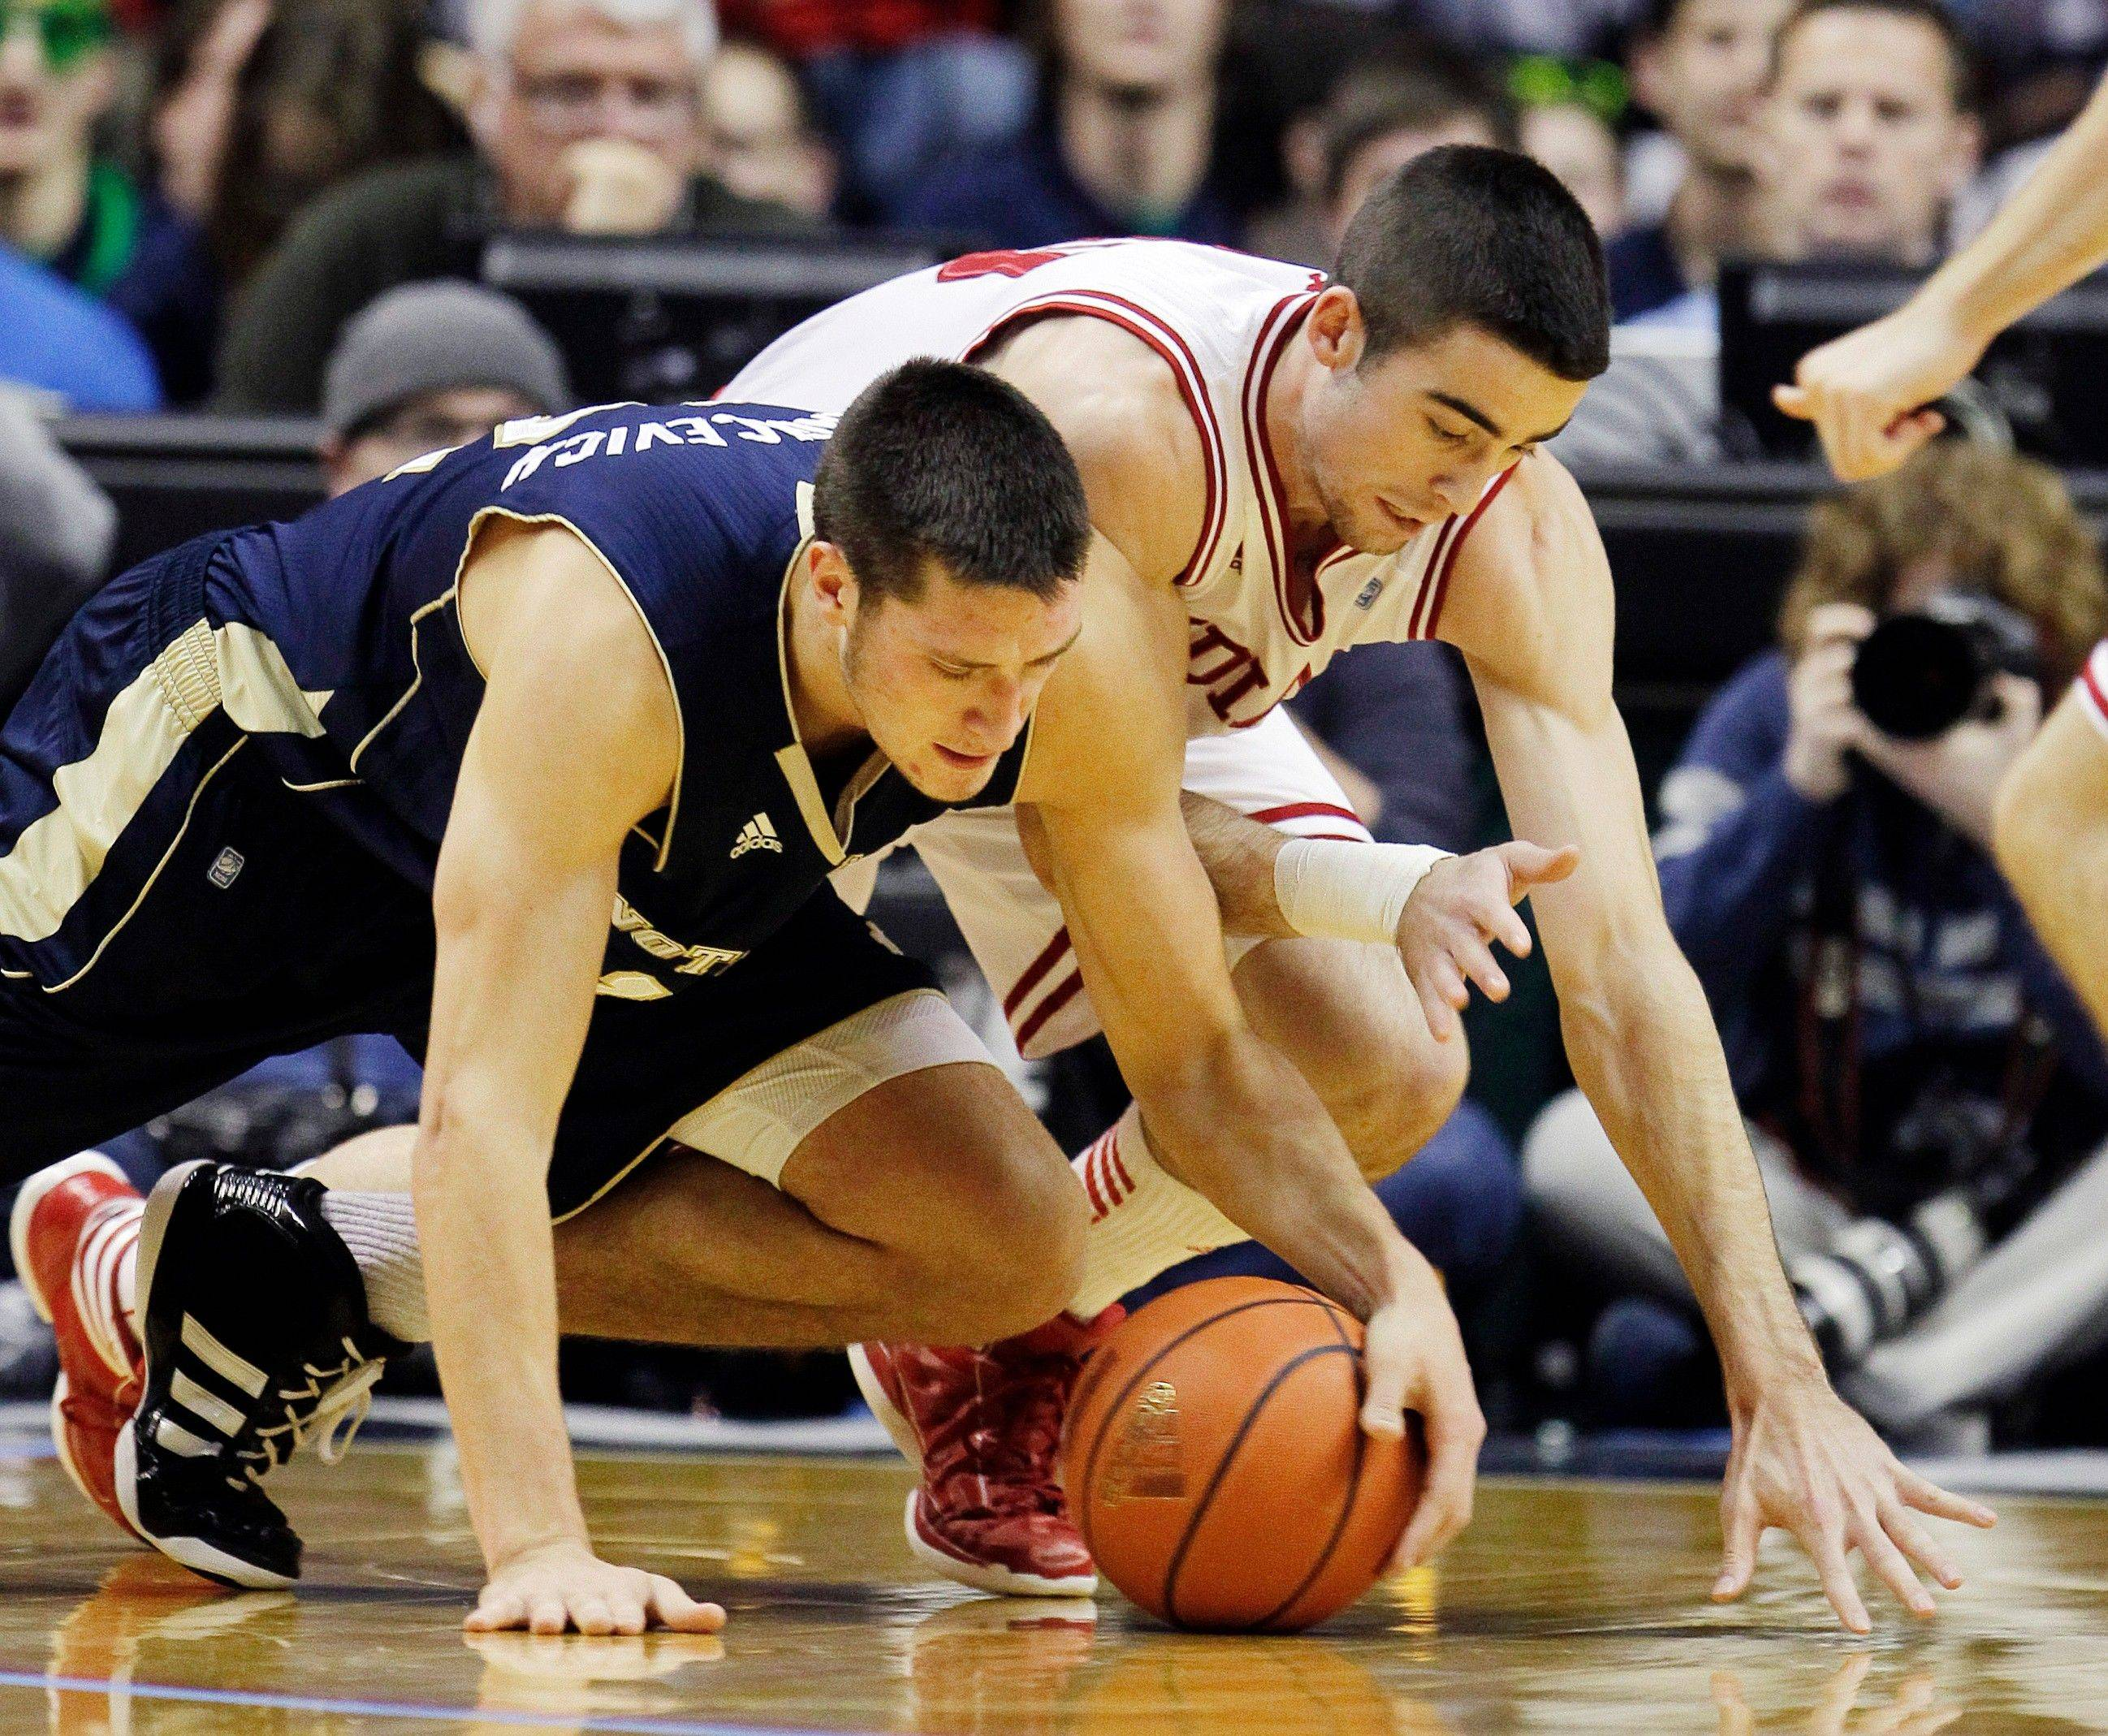 Irish struggle in 69-58 loss to No. 18 Indiana